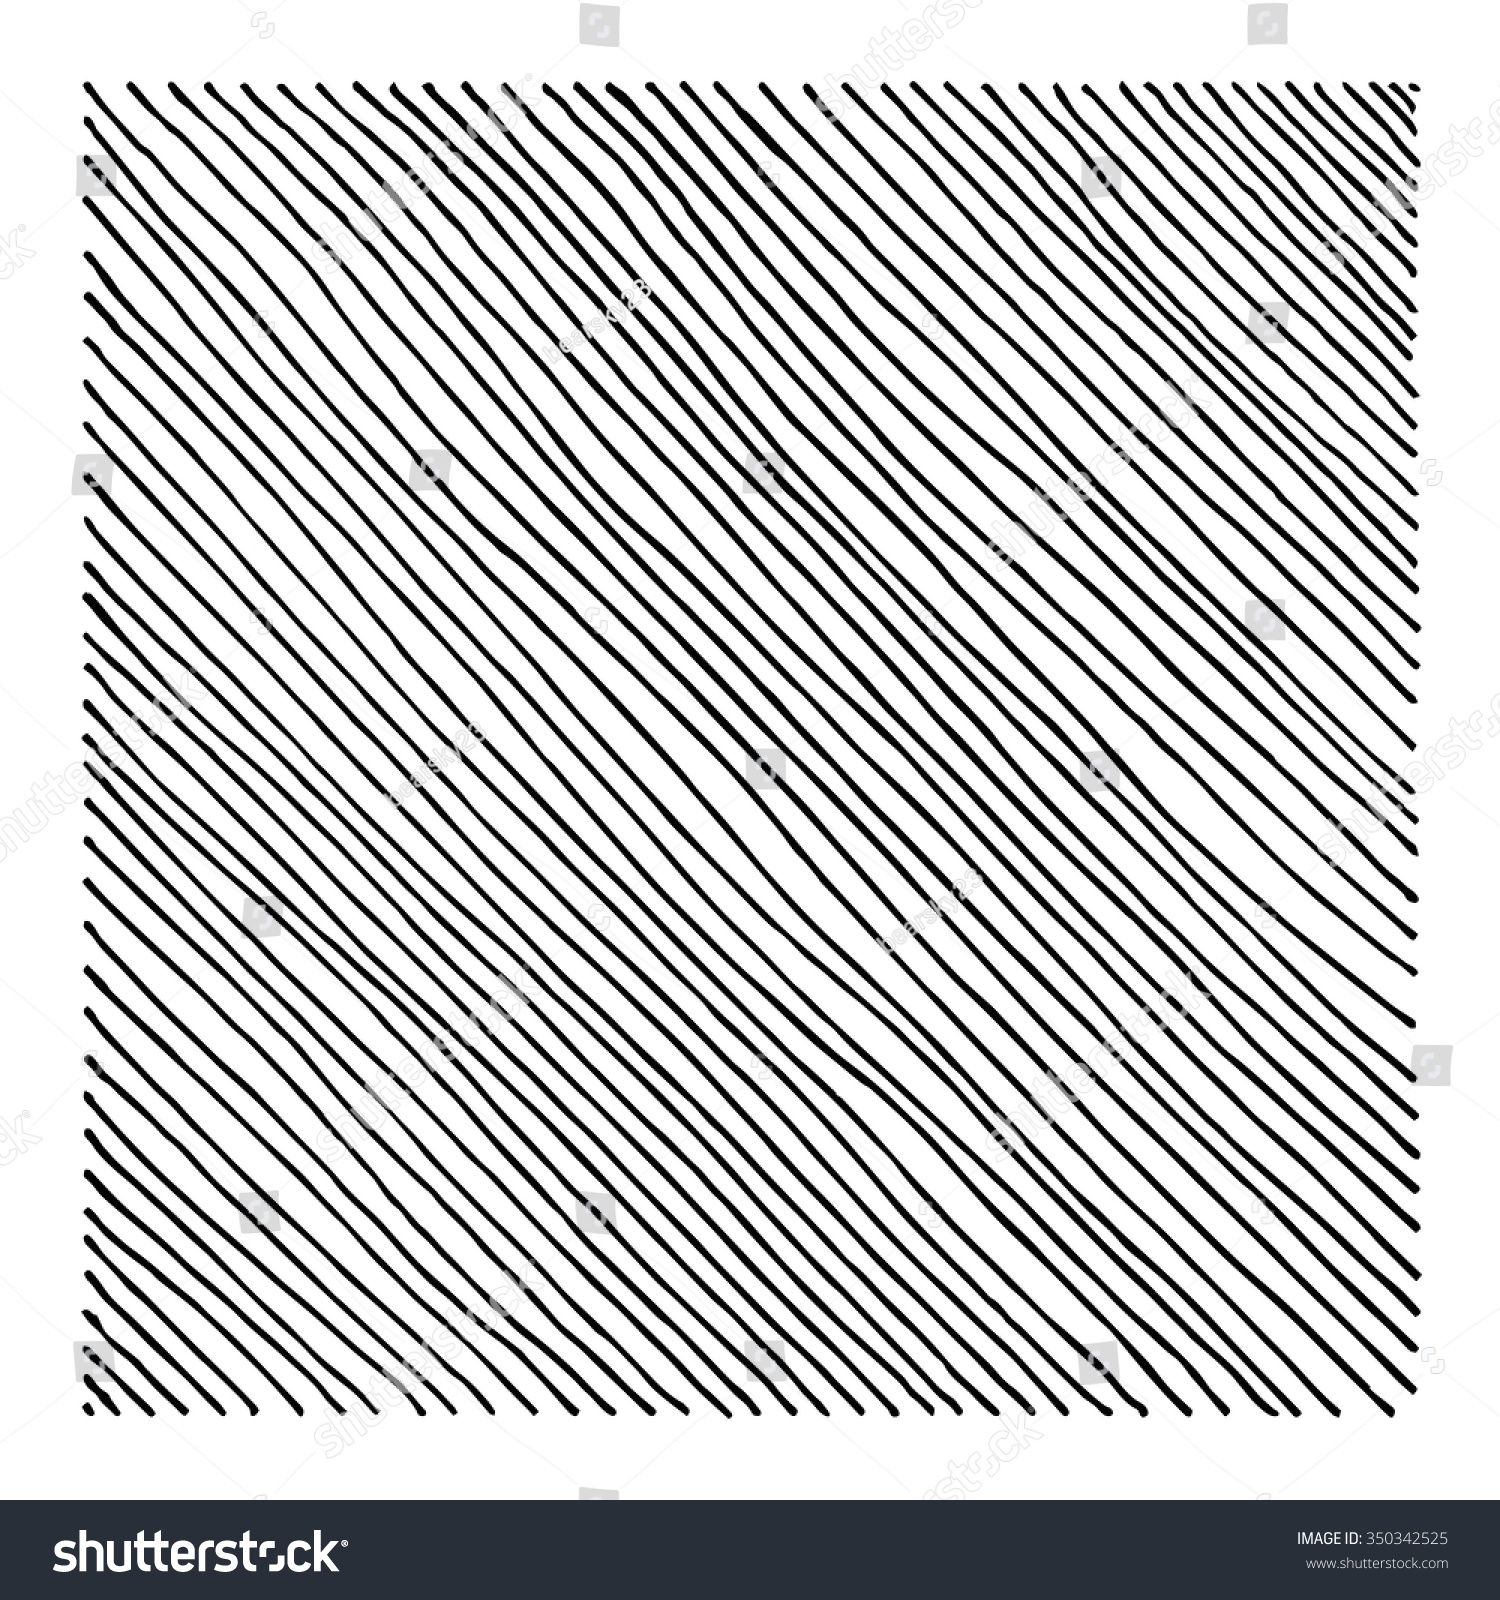 Drawing Lines With Html : Hand drawn straight black diagonal lines stock vector